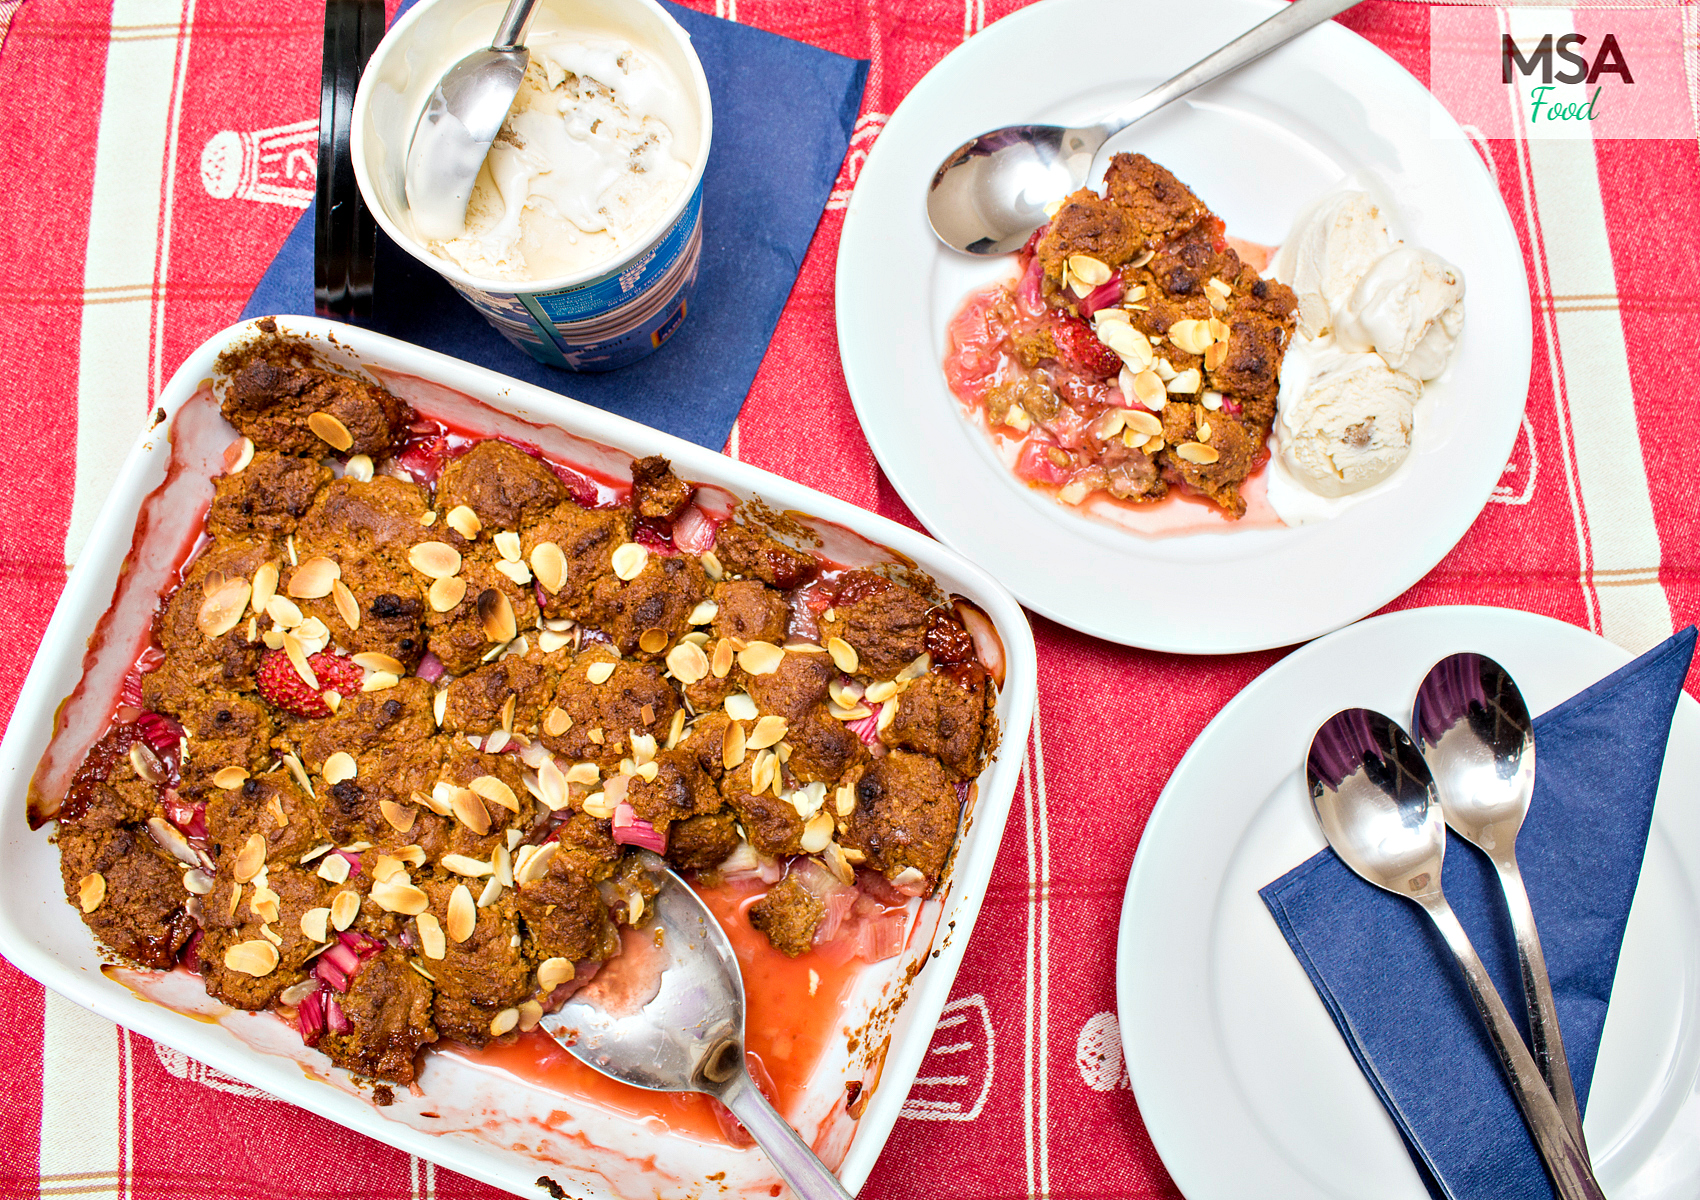 MSA's HEALTHY-ER RHUBARB AND STRAWBERRY COBBLER